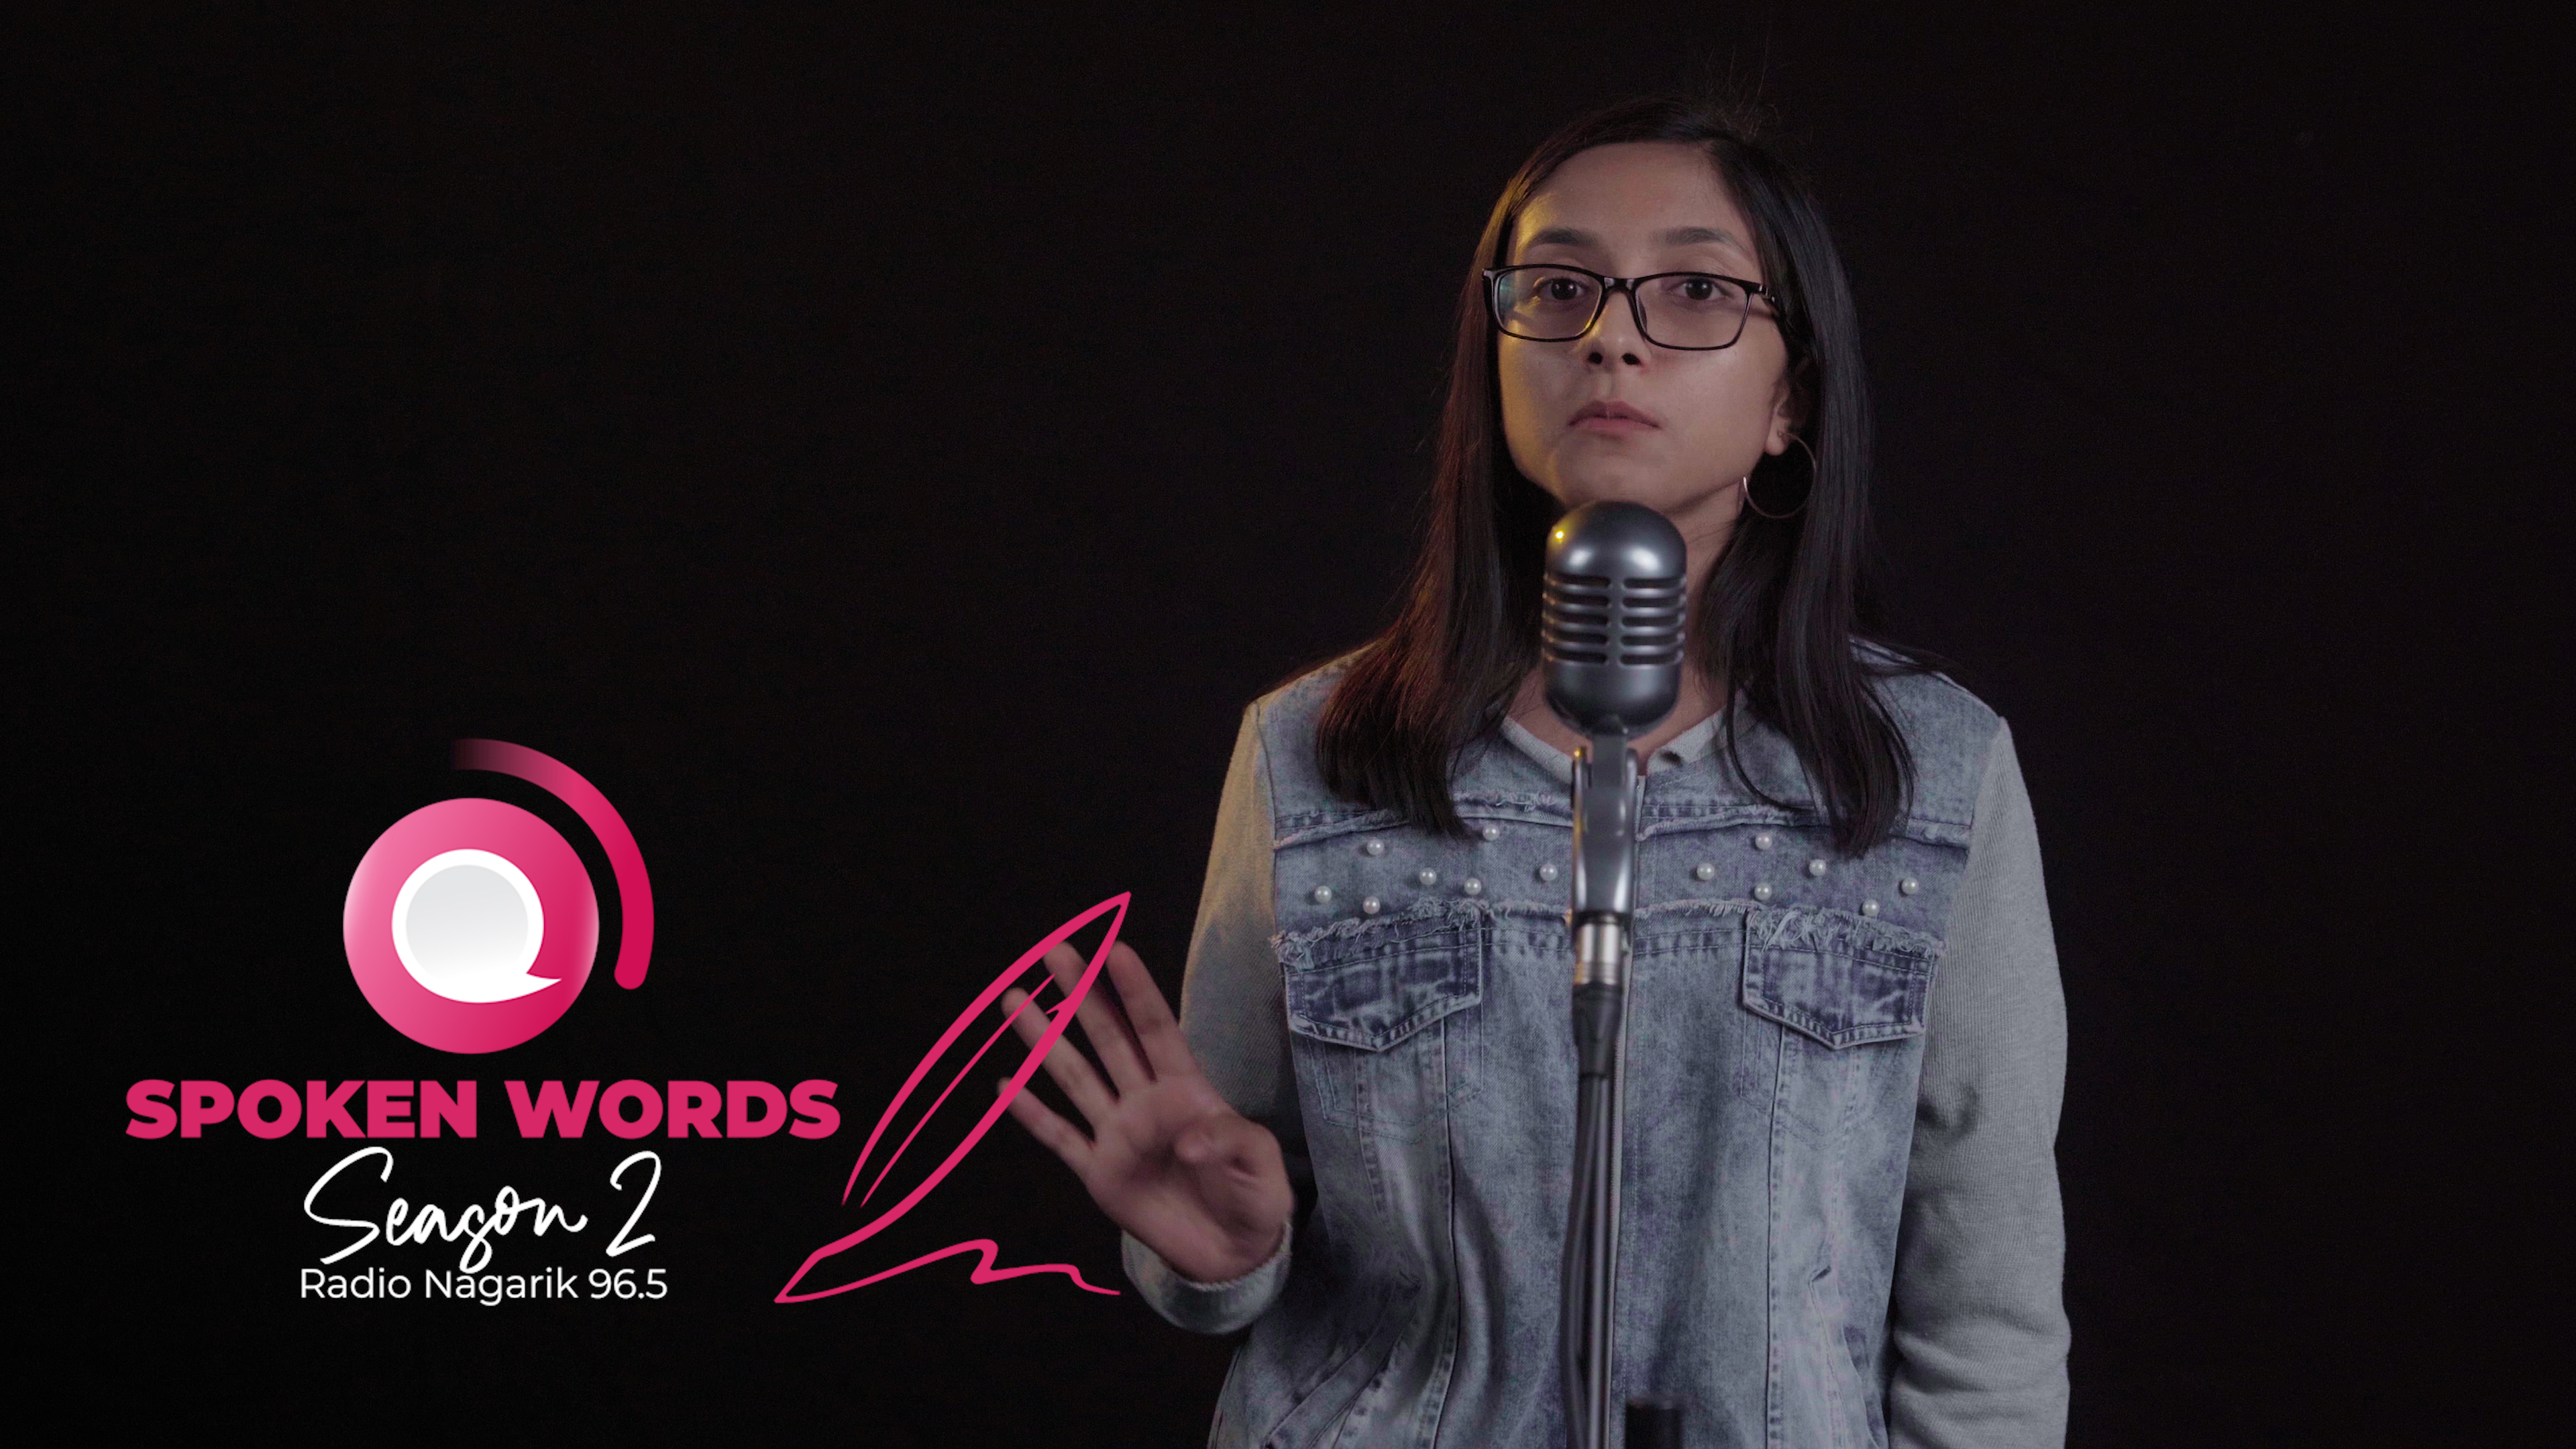 Spoken Words performed by Bipana Rai | 'Khokro'